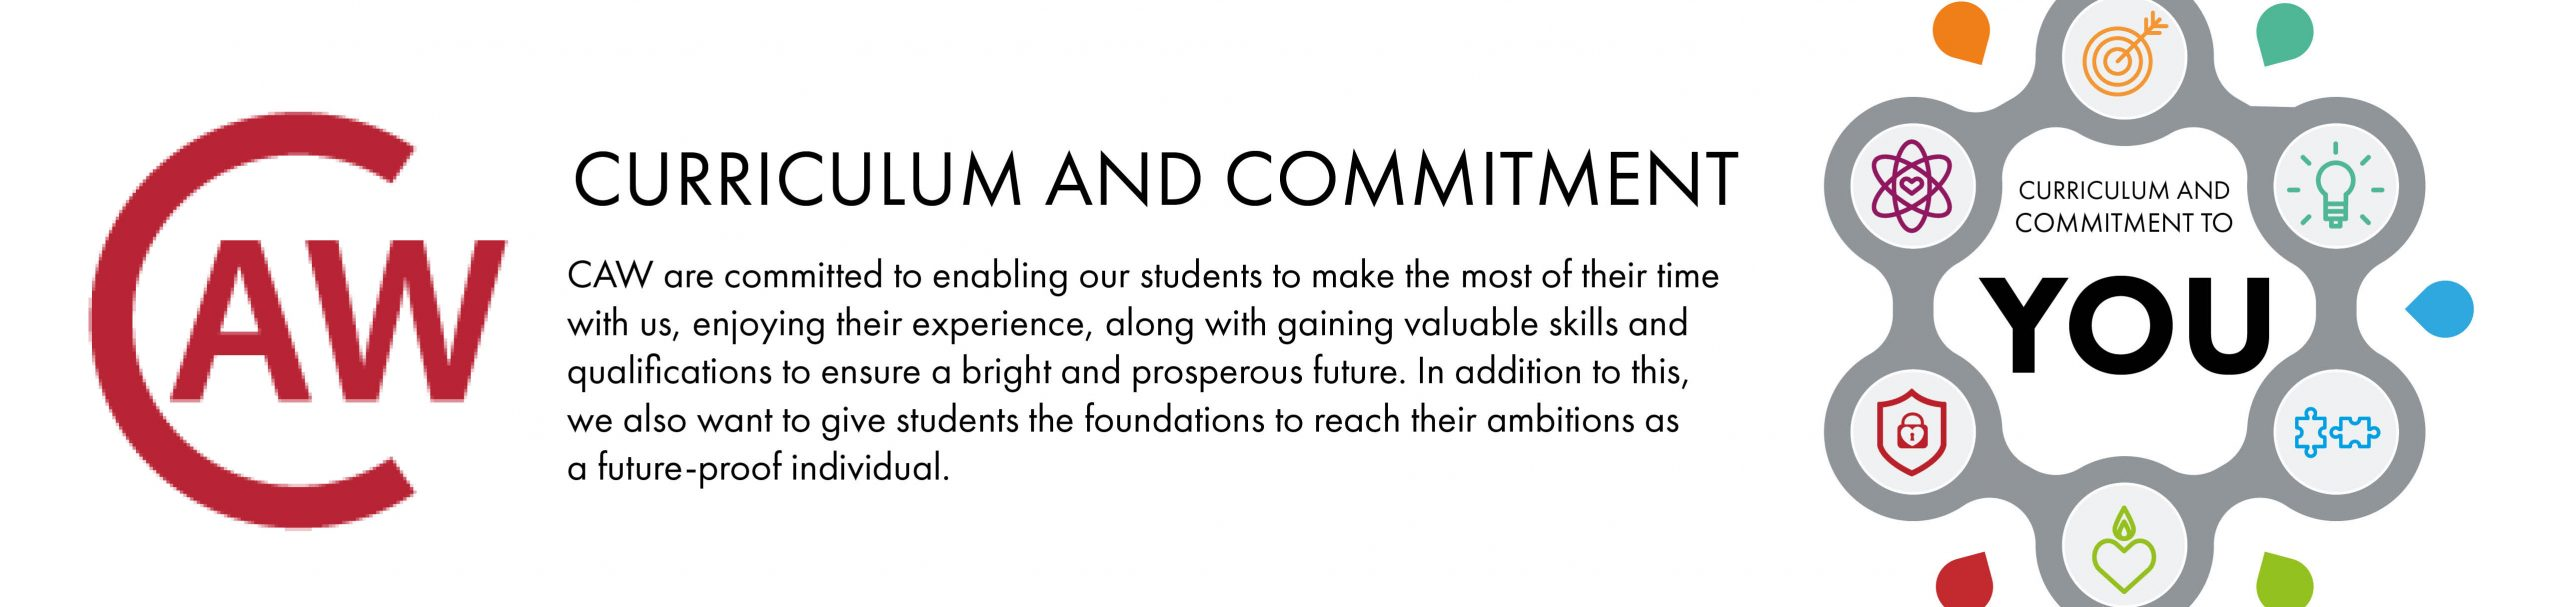 CAW Curriculum Commitment